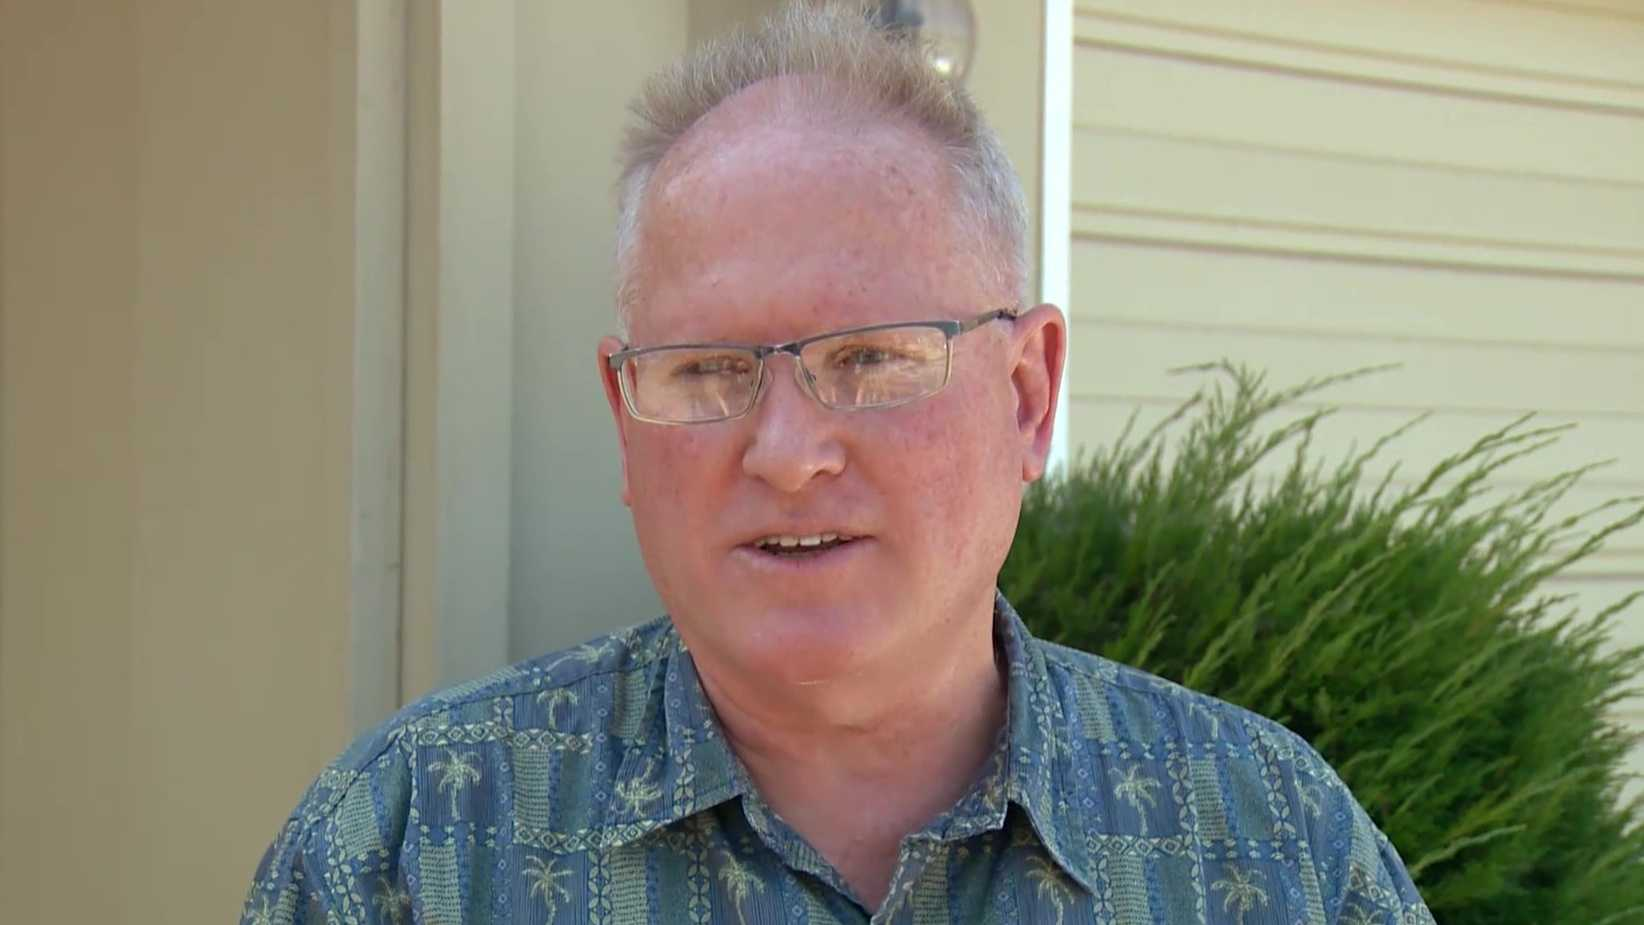 Brian J. Stone, 57, talked to KCRA on Aug. 22, 2015, after his son Spencer Stone helped take down a terror suspect on a train in France. Brian Stone was charged with 13 counts of mail fraud in connection to an arson insurance schemed on Friday, March 18, 2016, said Lauren Horwood, spokesperson for the Eastern District of California U.S. Attorney's Office.